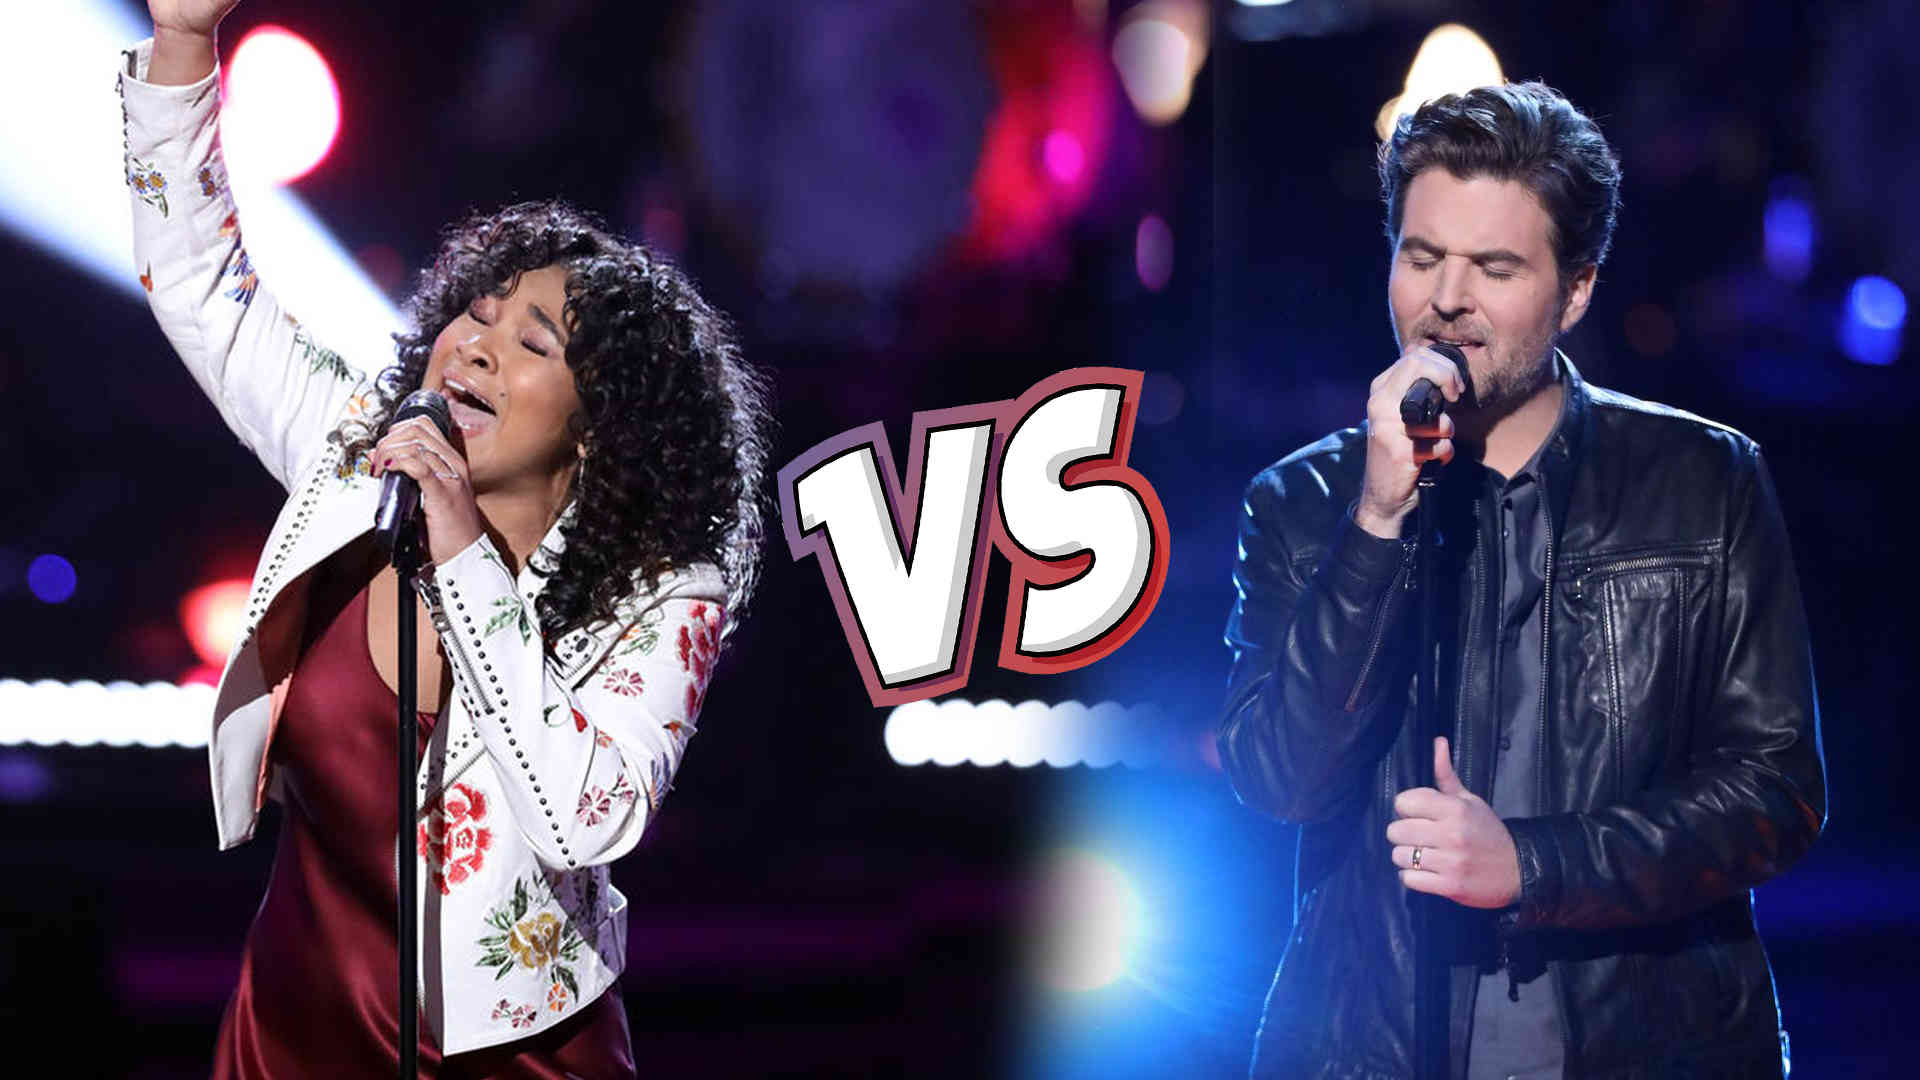 Watch The Voice USA 2018 Knockout Reid Umstattd vs Jordyn Simone full Performance Video 9 April 2018